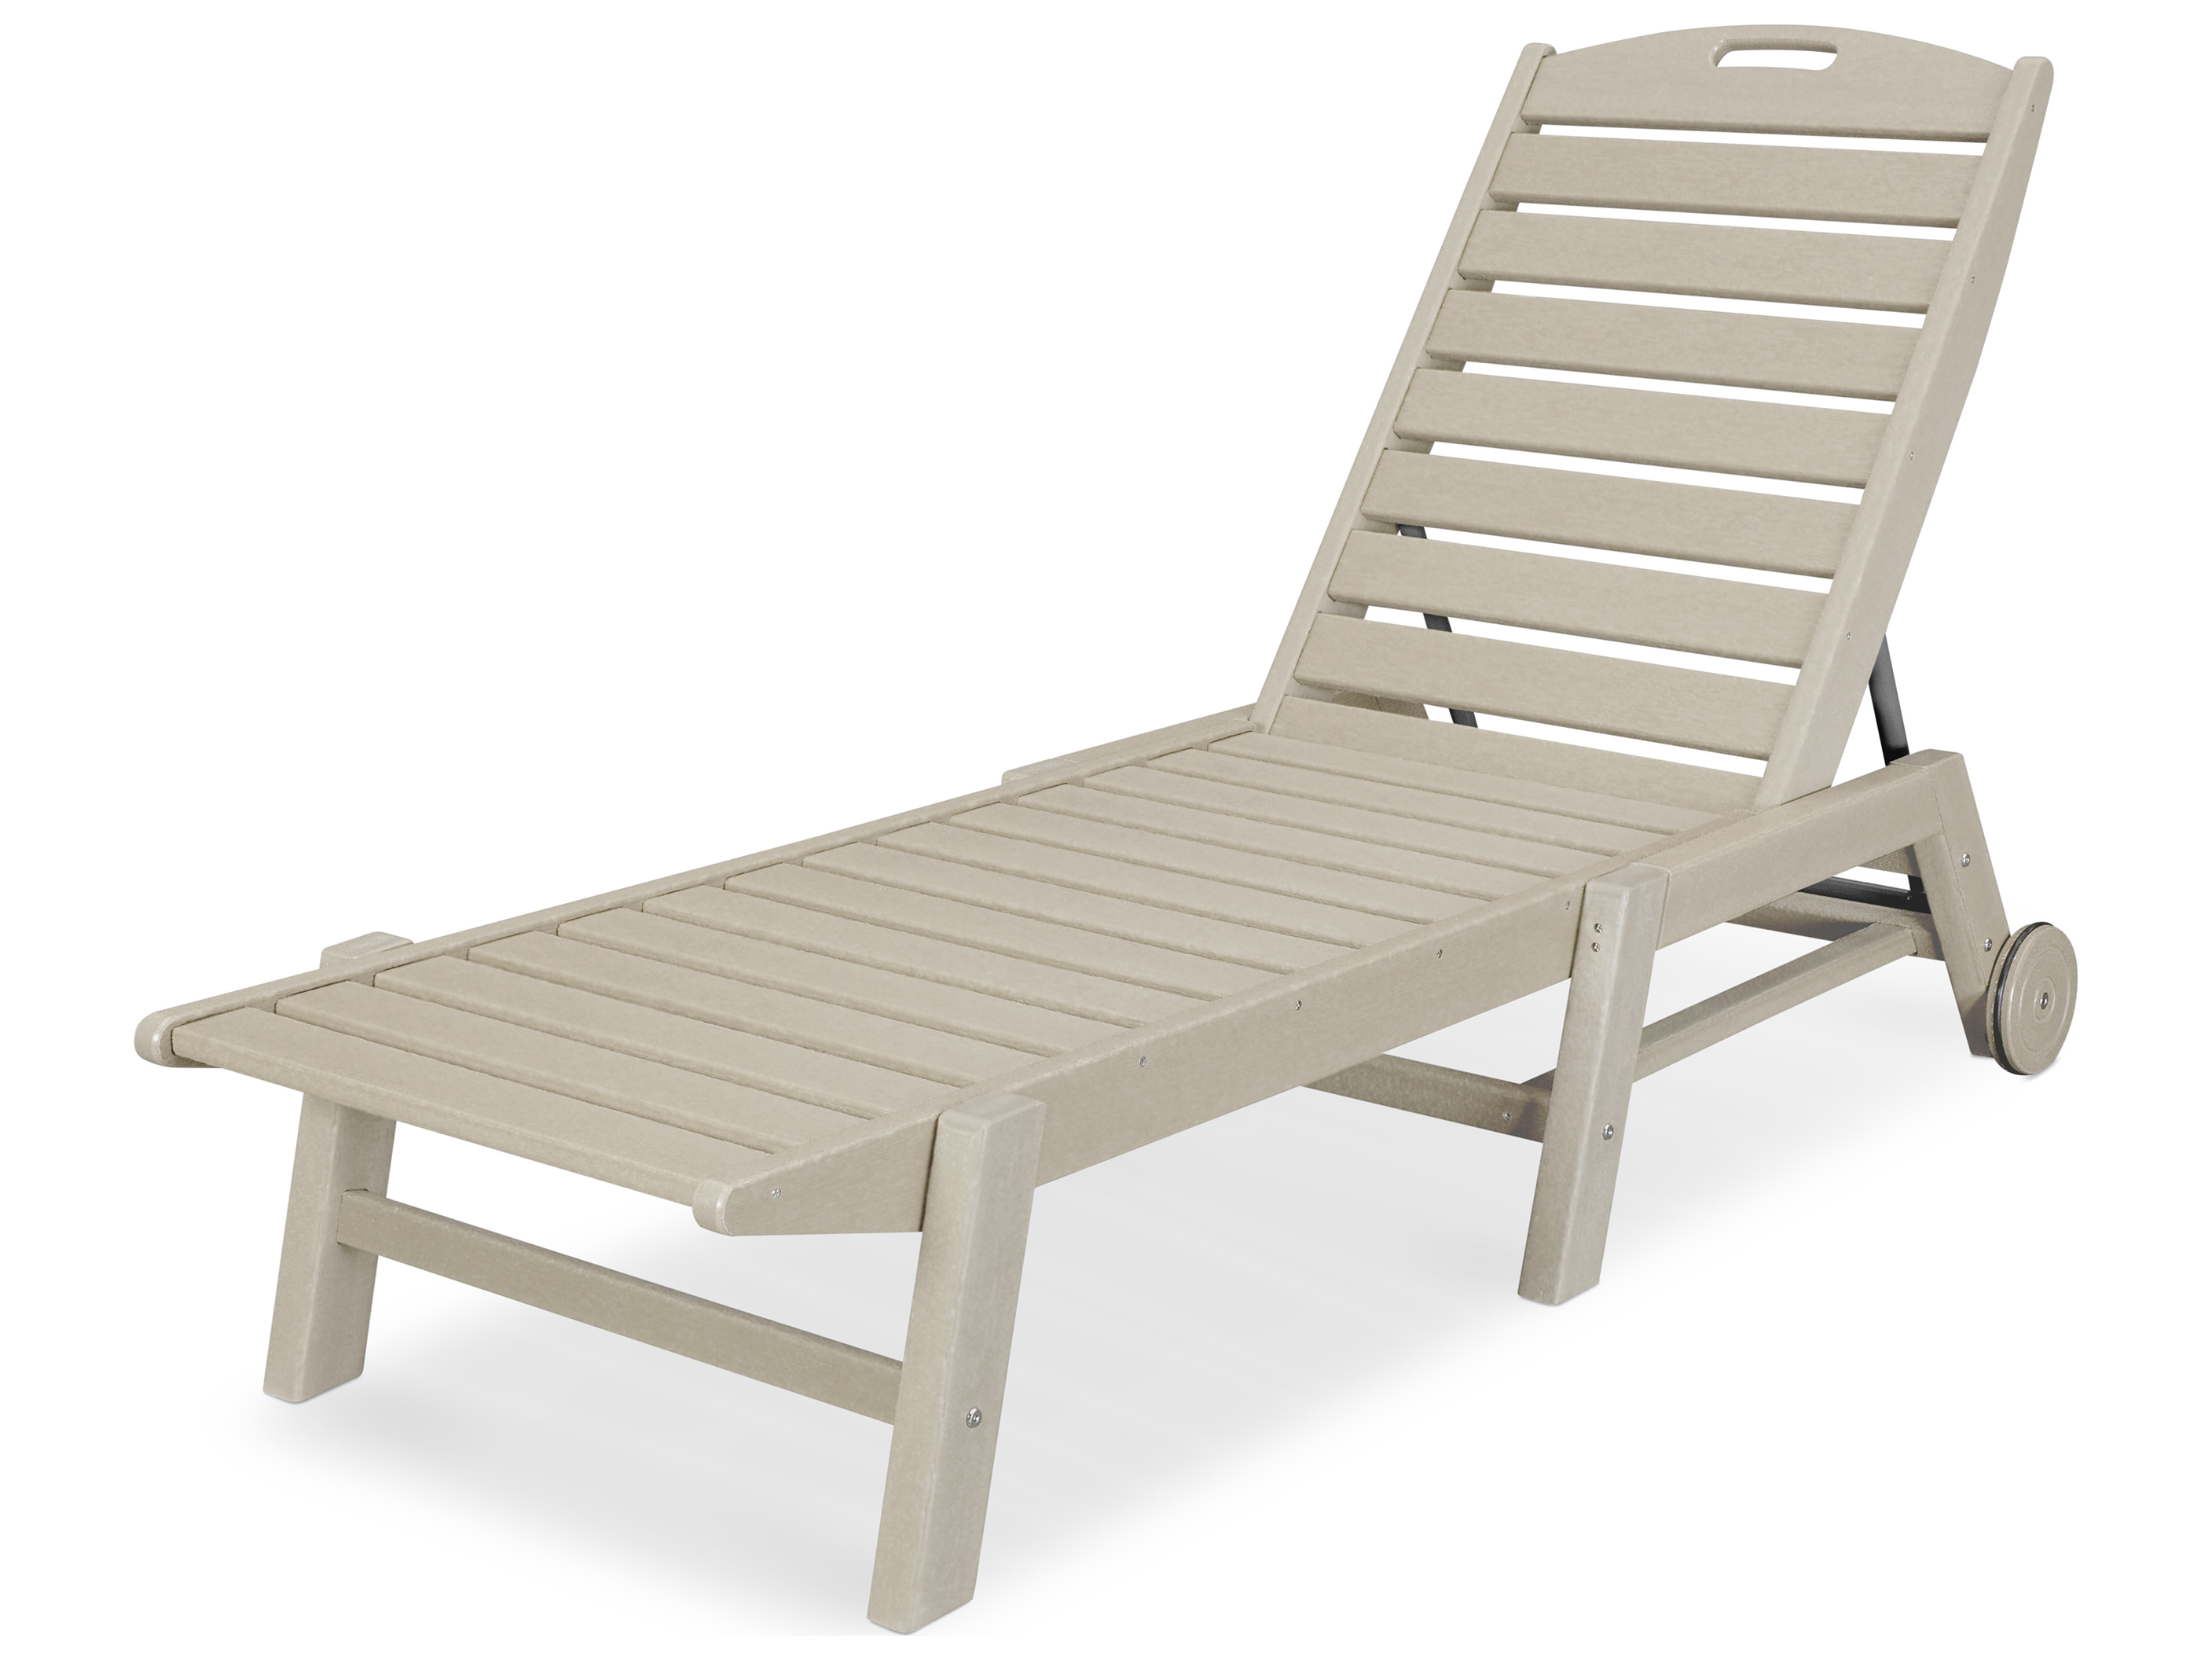 Polywood nautical recycled plastic stackable chaise lounge pwnaw2280 - Chaises plastiques transparentes ...